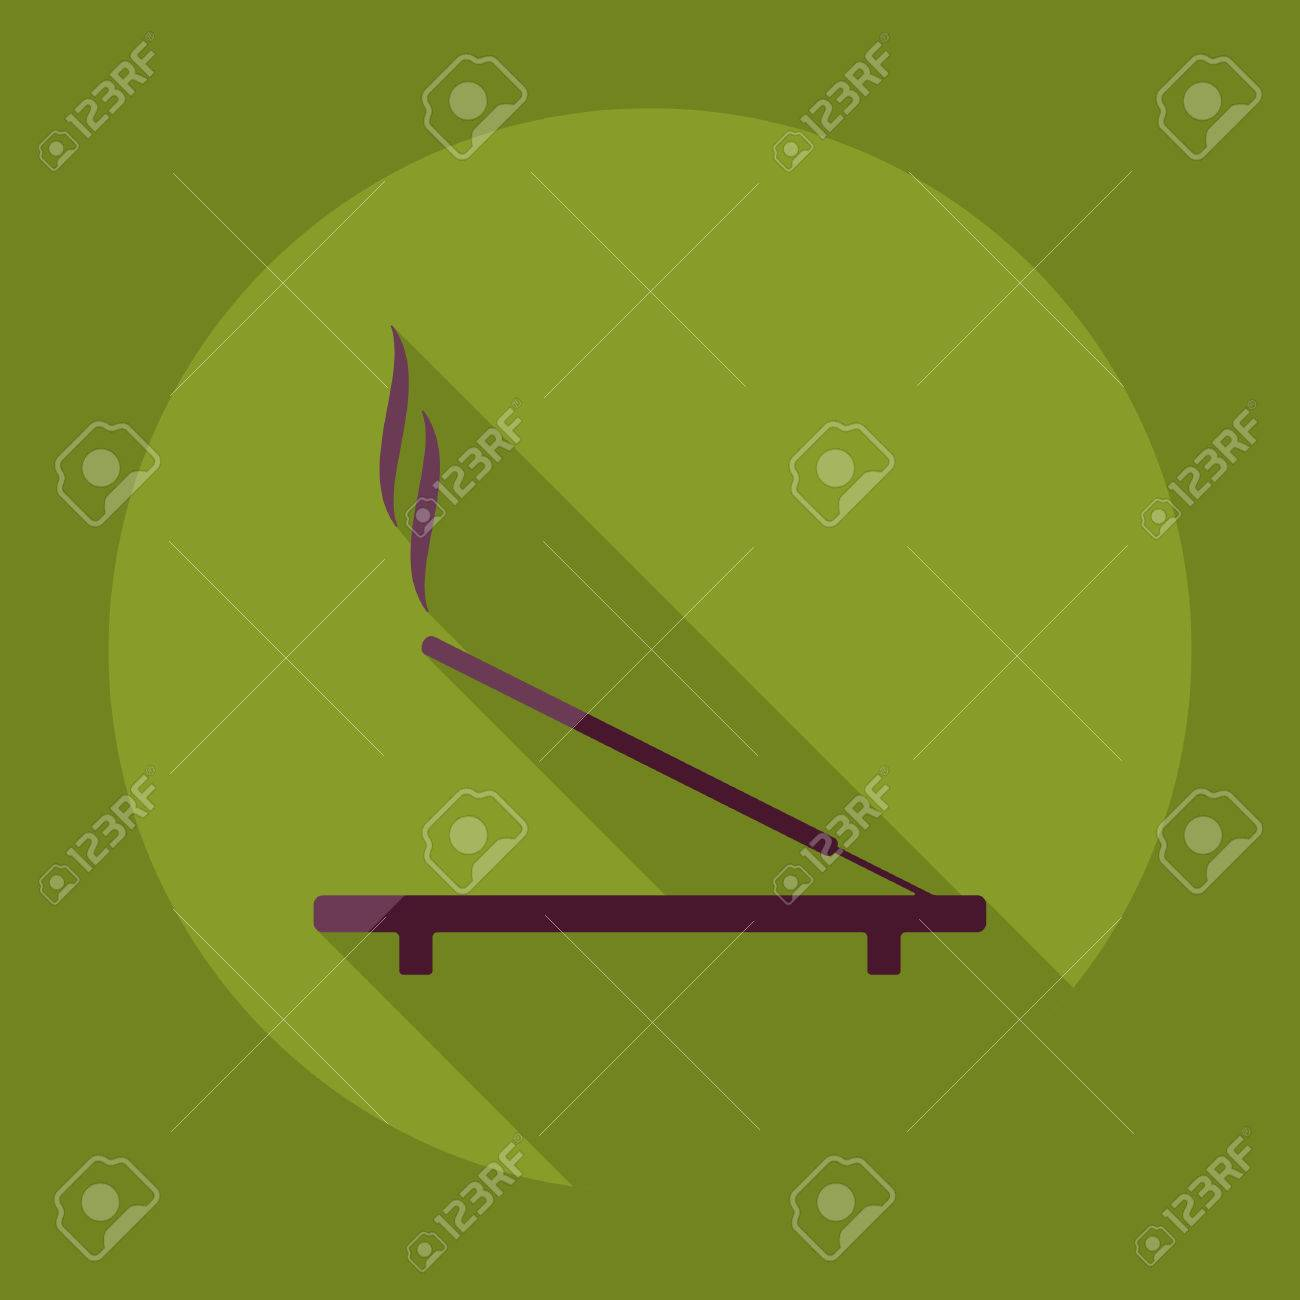 Flat Modern Design With Shadow Incense Sticks Royalty Free Cliparts Vectors And Stock Illustration Image 53022787